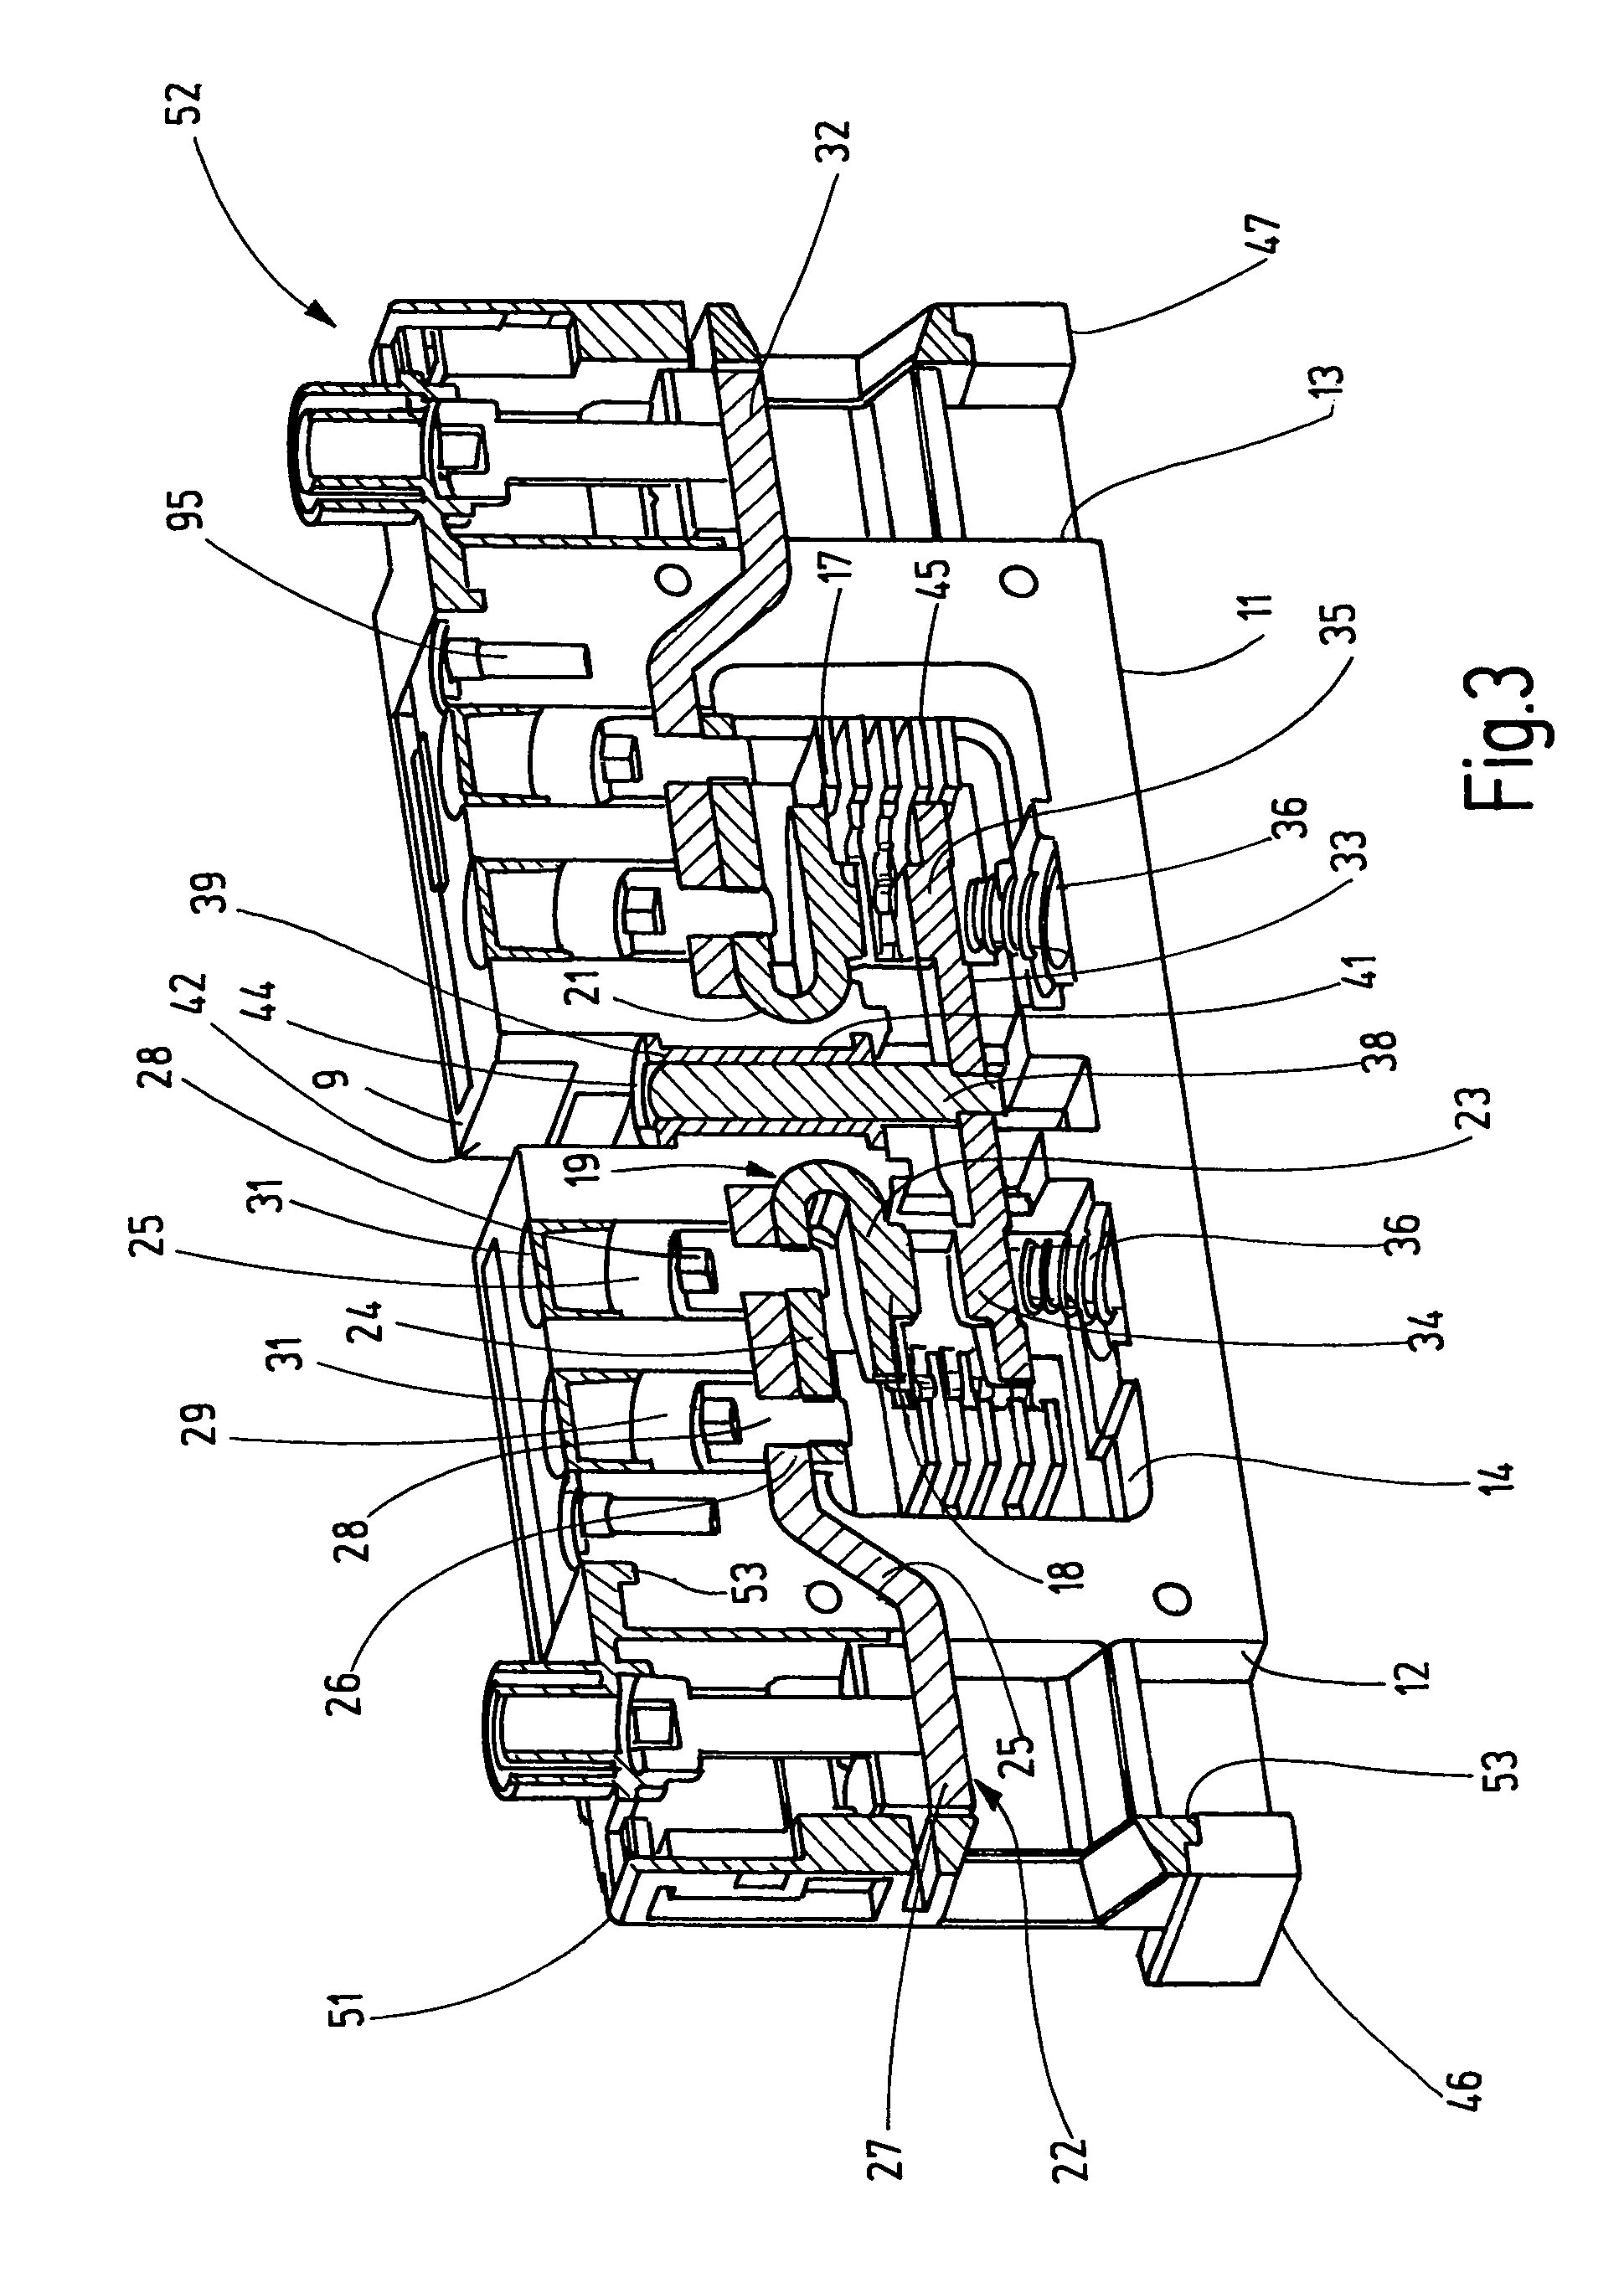 Dpdt Rotary Switch Schematic